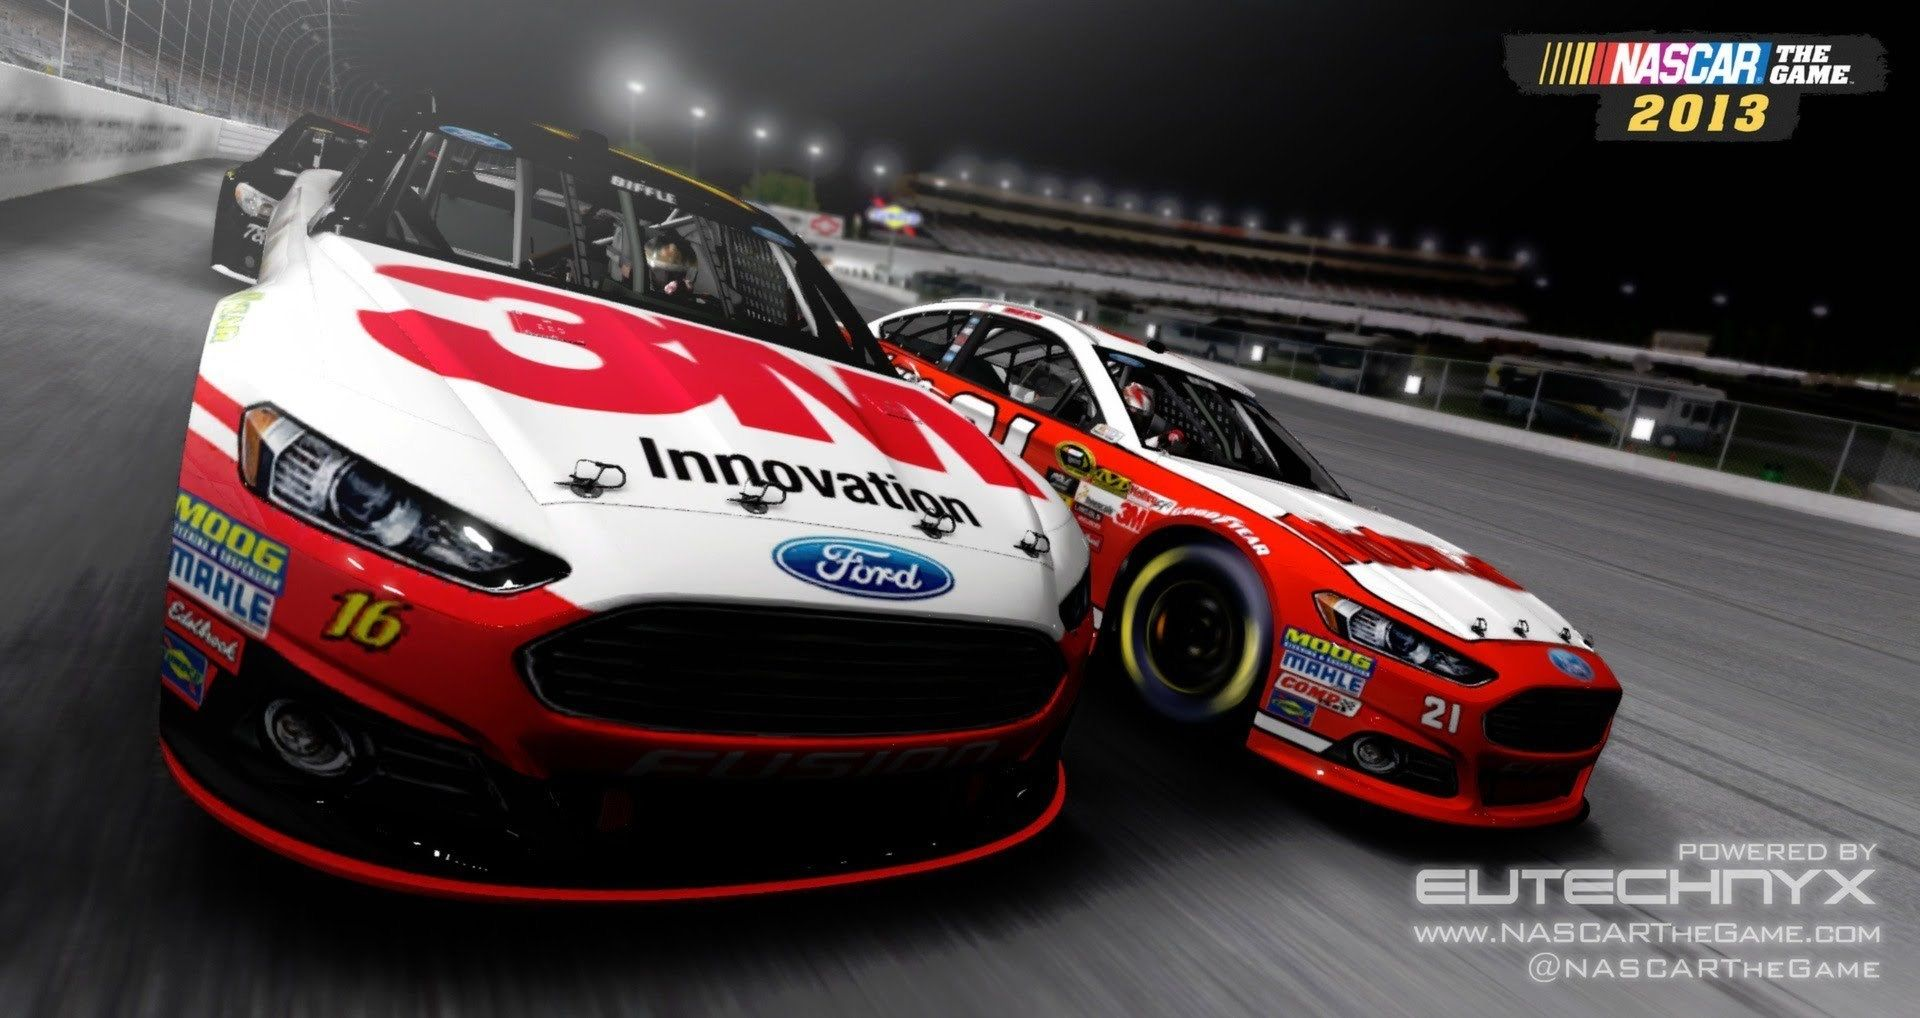 1920x1018px Nascar Wallpaper Backgrounds Hd By Falcon Sinclair Nascar Games Wallpaper Backgrounds